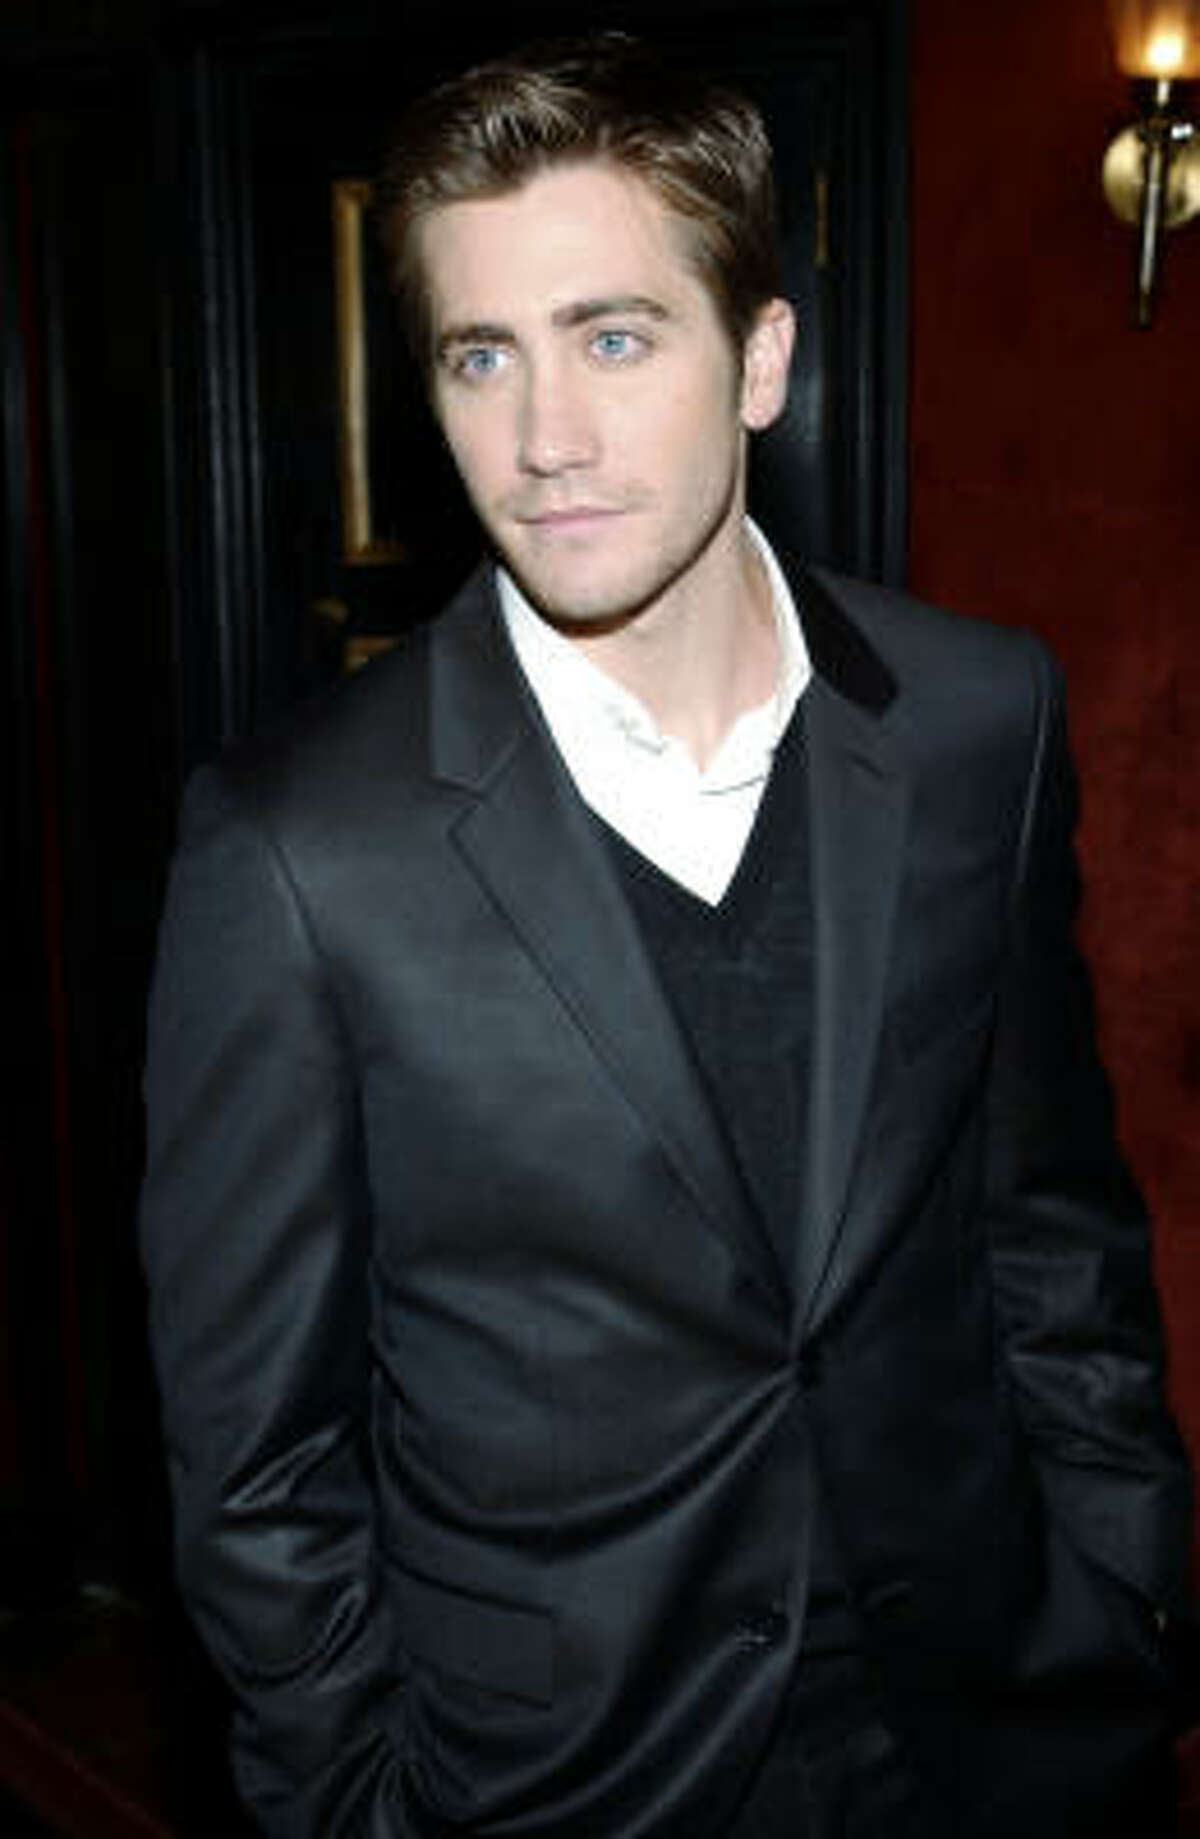 Jake Gyllenhaal: He might have dreamy eyes, but the sexiest thing about this hunk is that he's a one-woman type of guy.